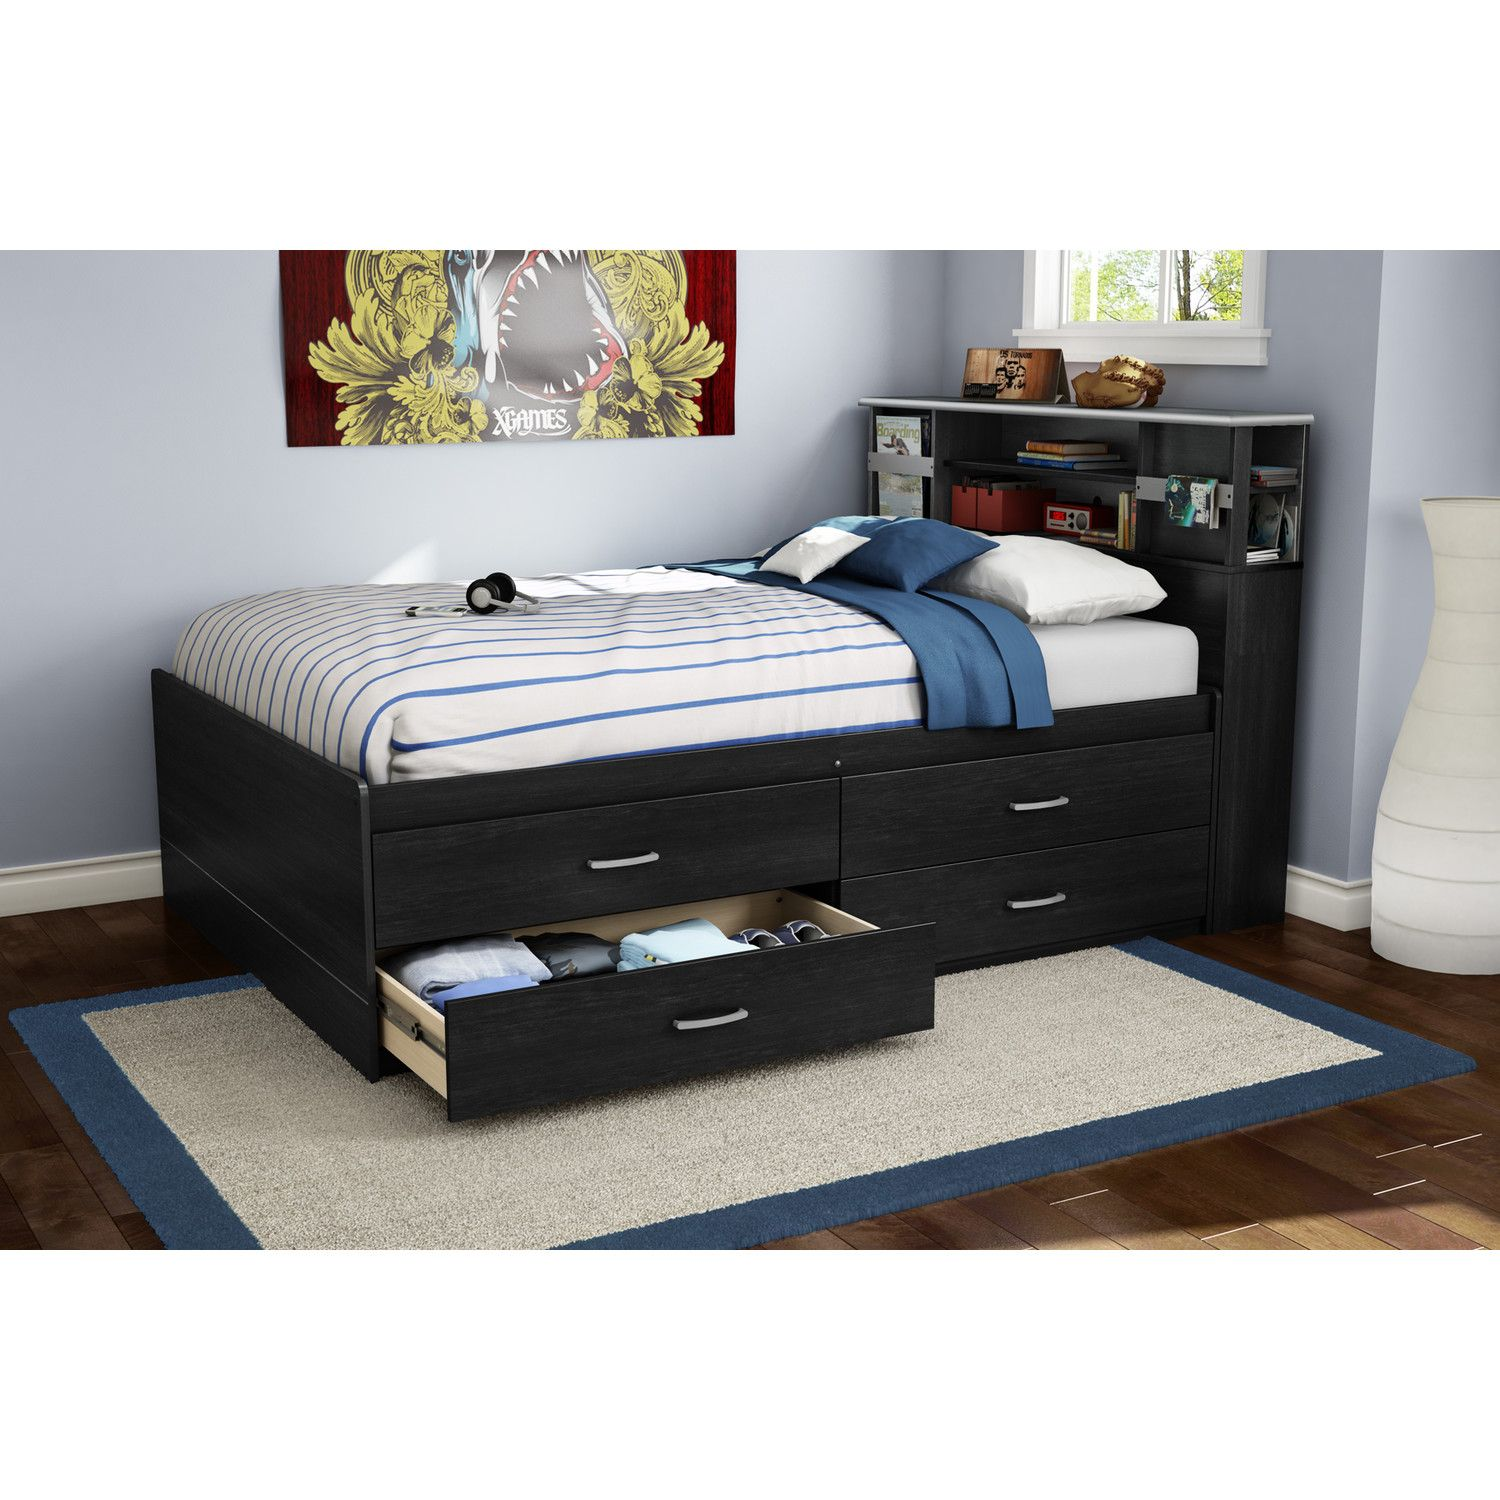 Step One Full Platform Bed with Drawers Bed with drawers